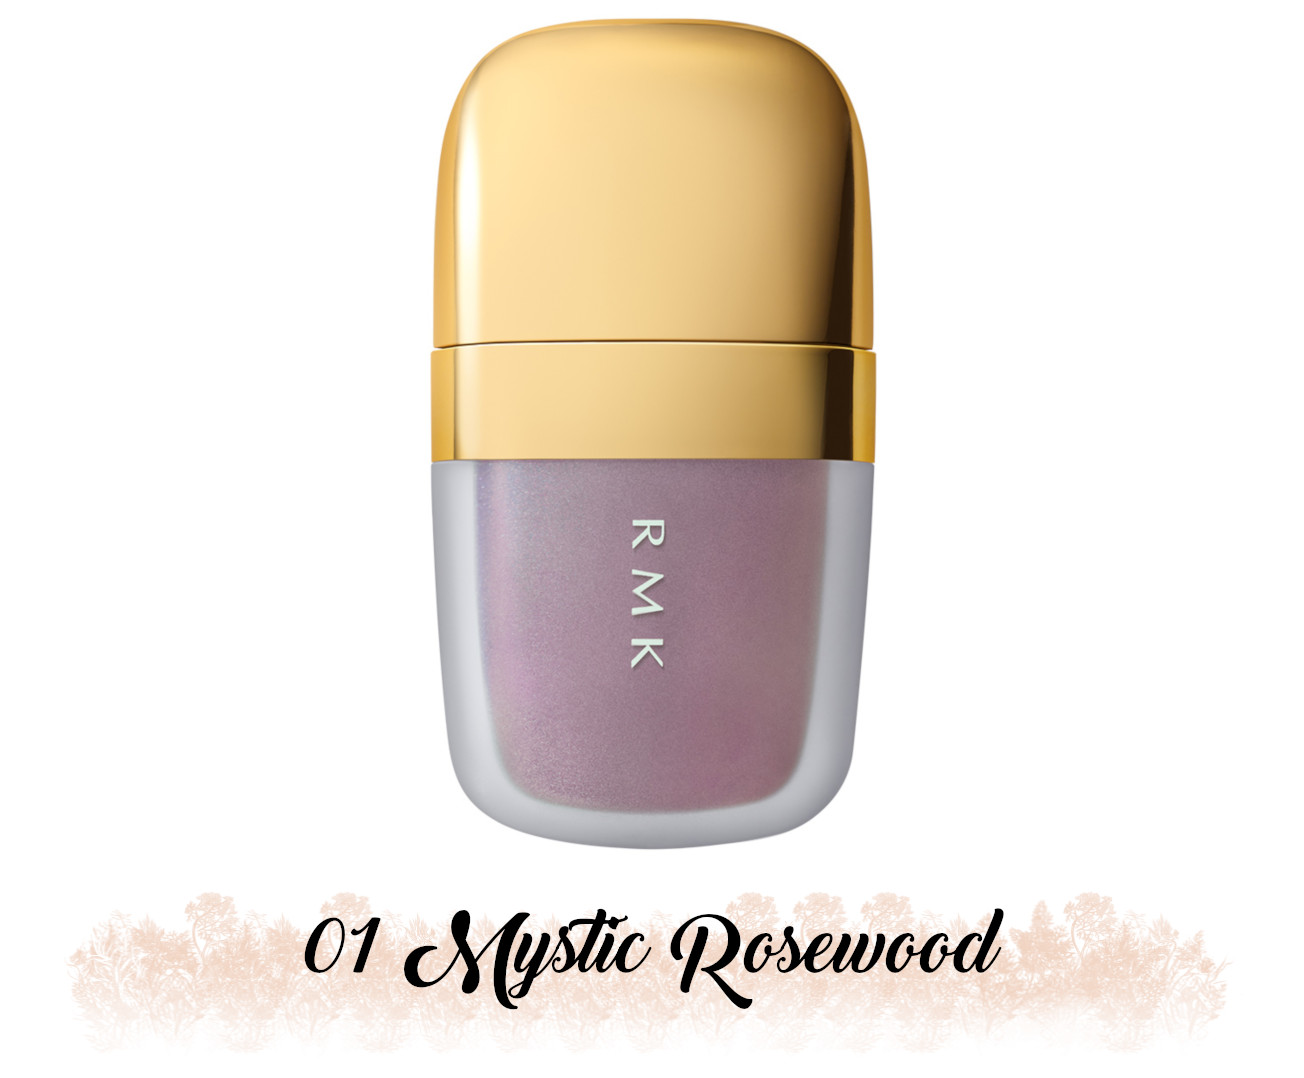 RMK Fall 2021 Collection Rosewood Daydream Rosewood Daydream Liquid Eyes 01 Mystic Rosewood